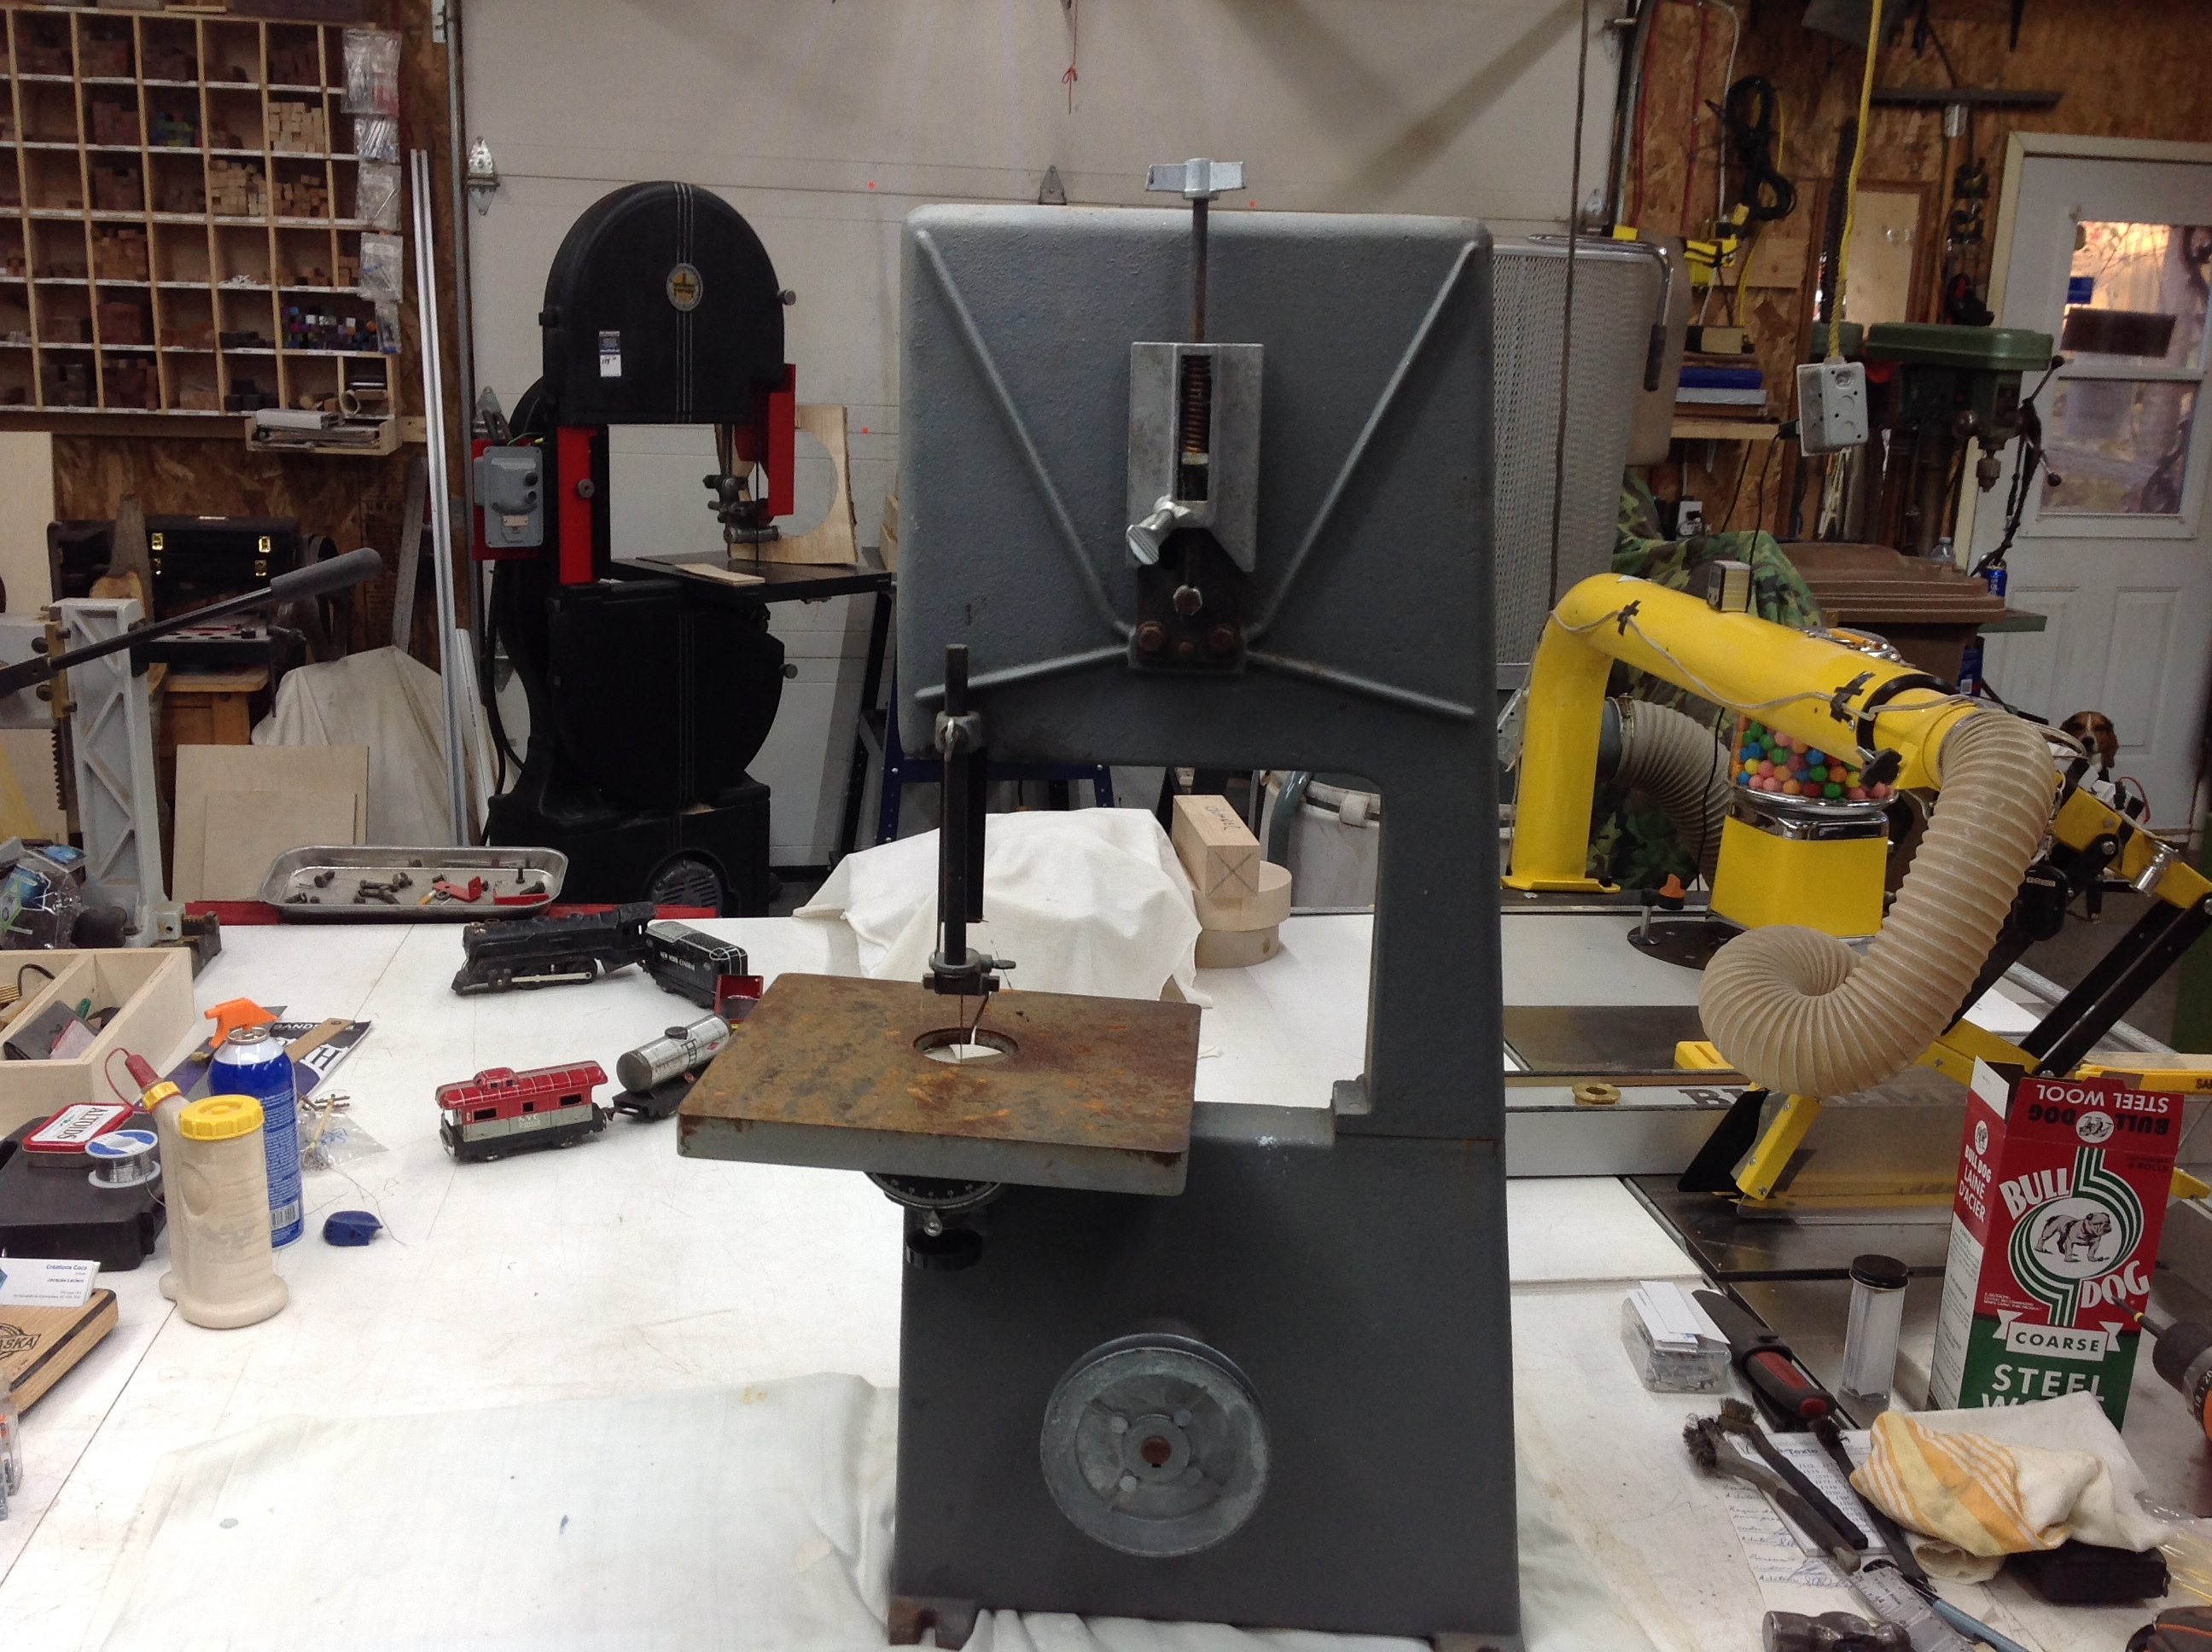 Rockwell Beaver band saw 10'' - Canadian Woodworking and Home